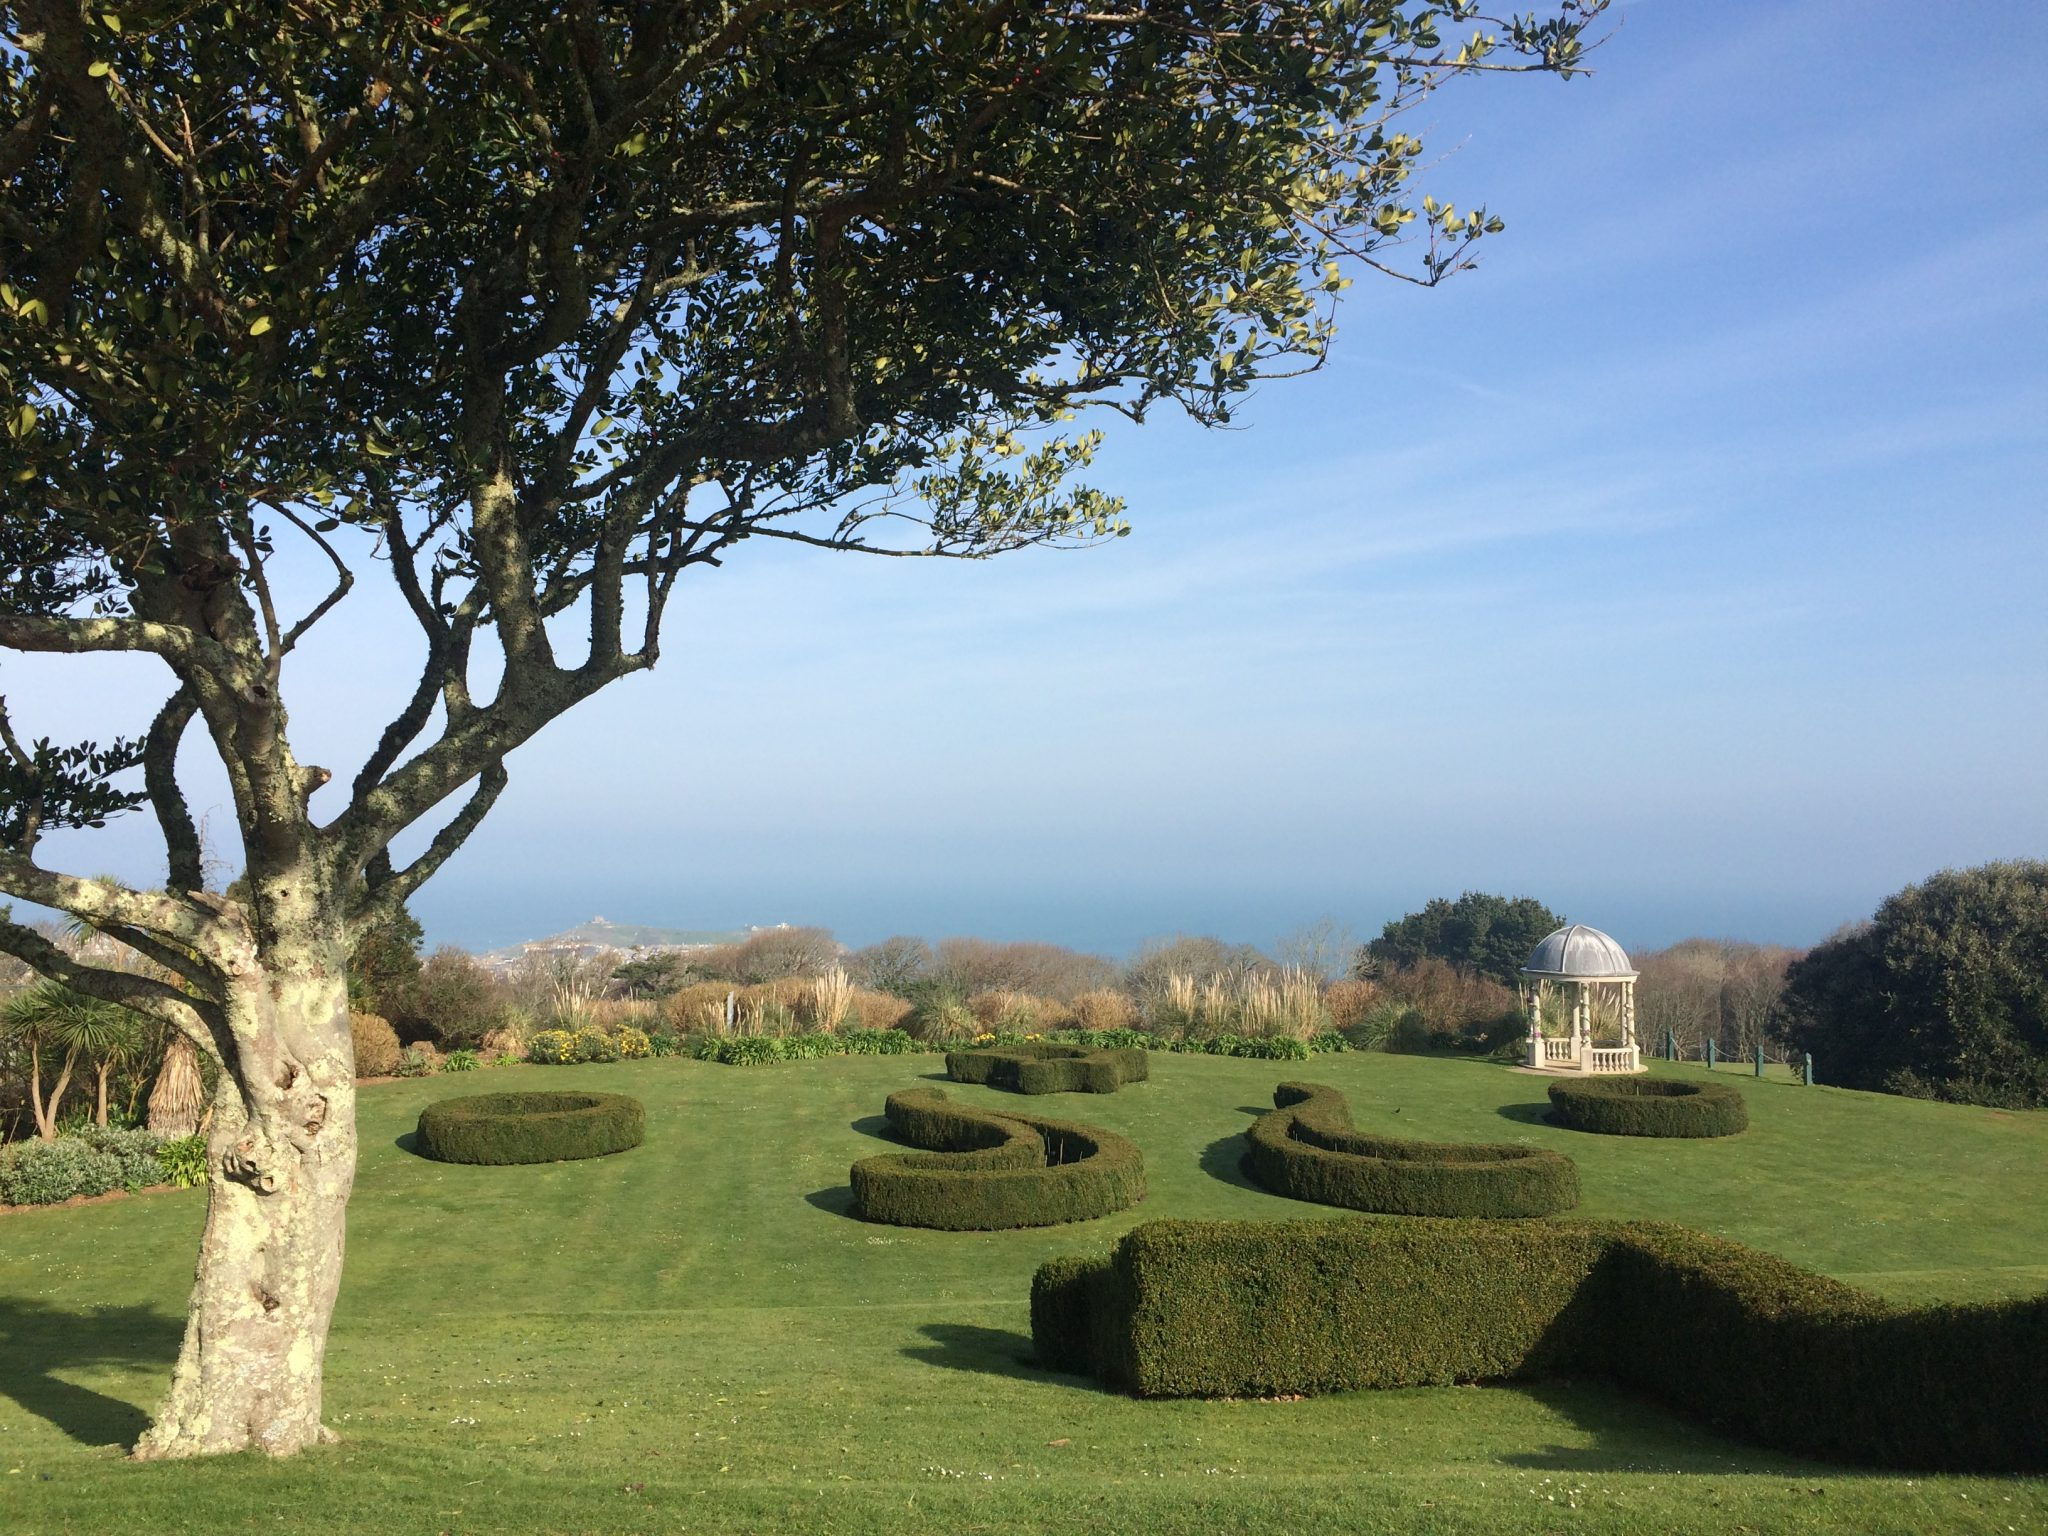 Tregenna castle gardens with a blure sky and lush green hedges and grass